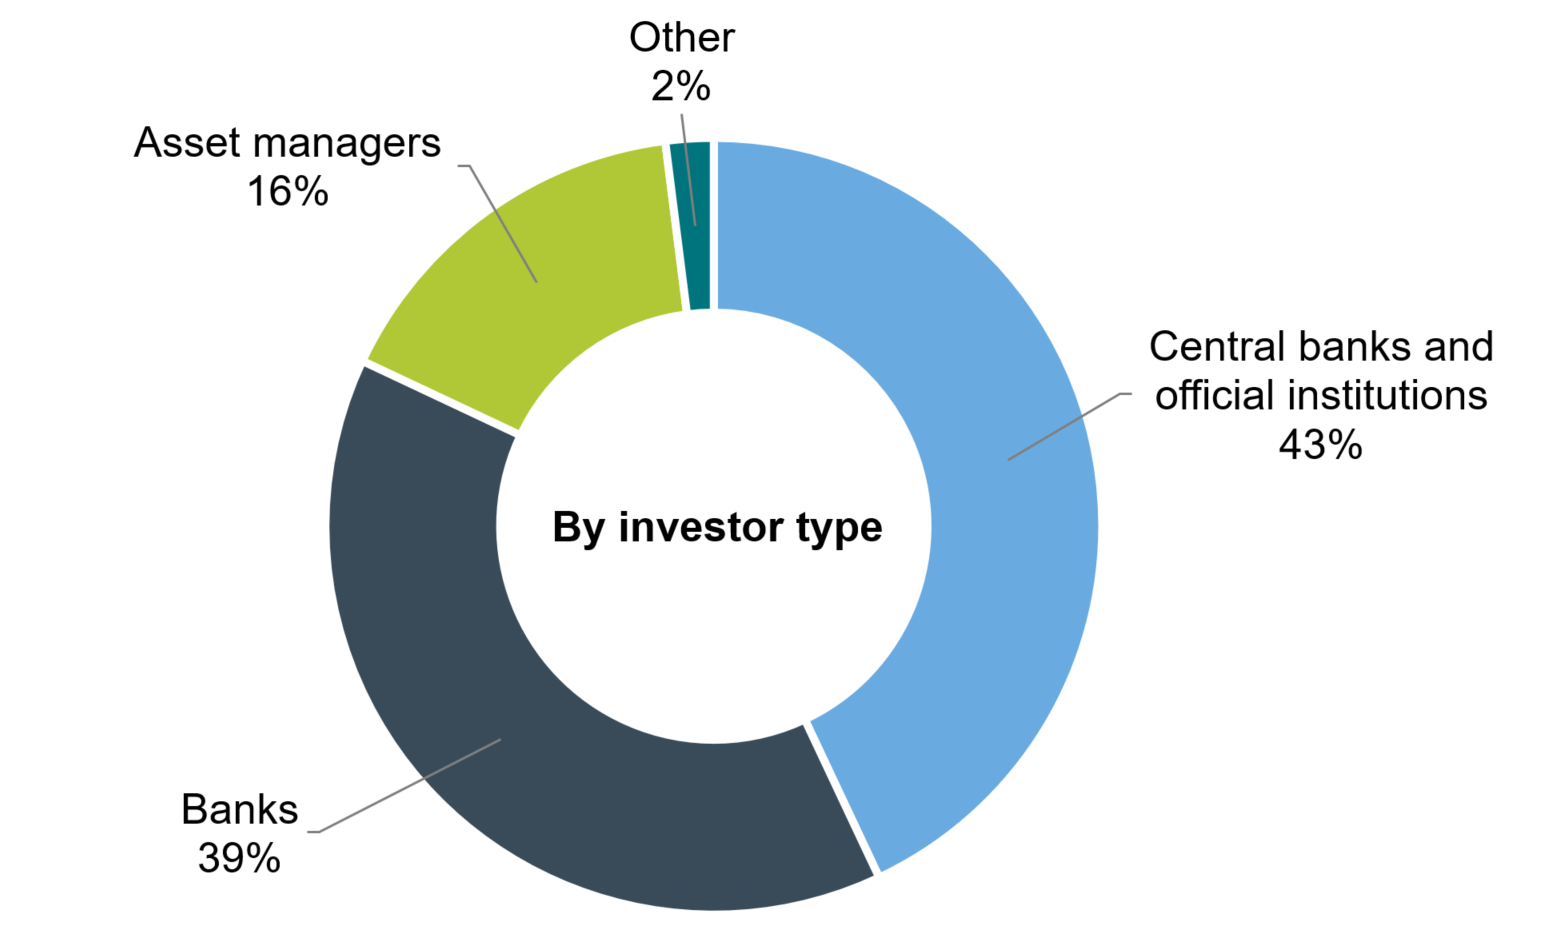 CADEPO 2021 - By investor type